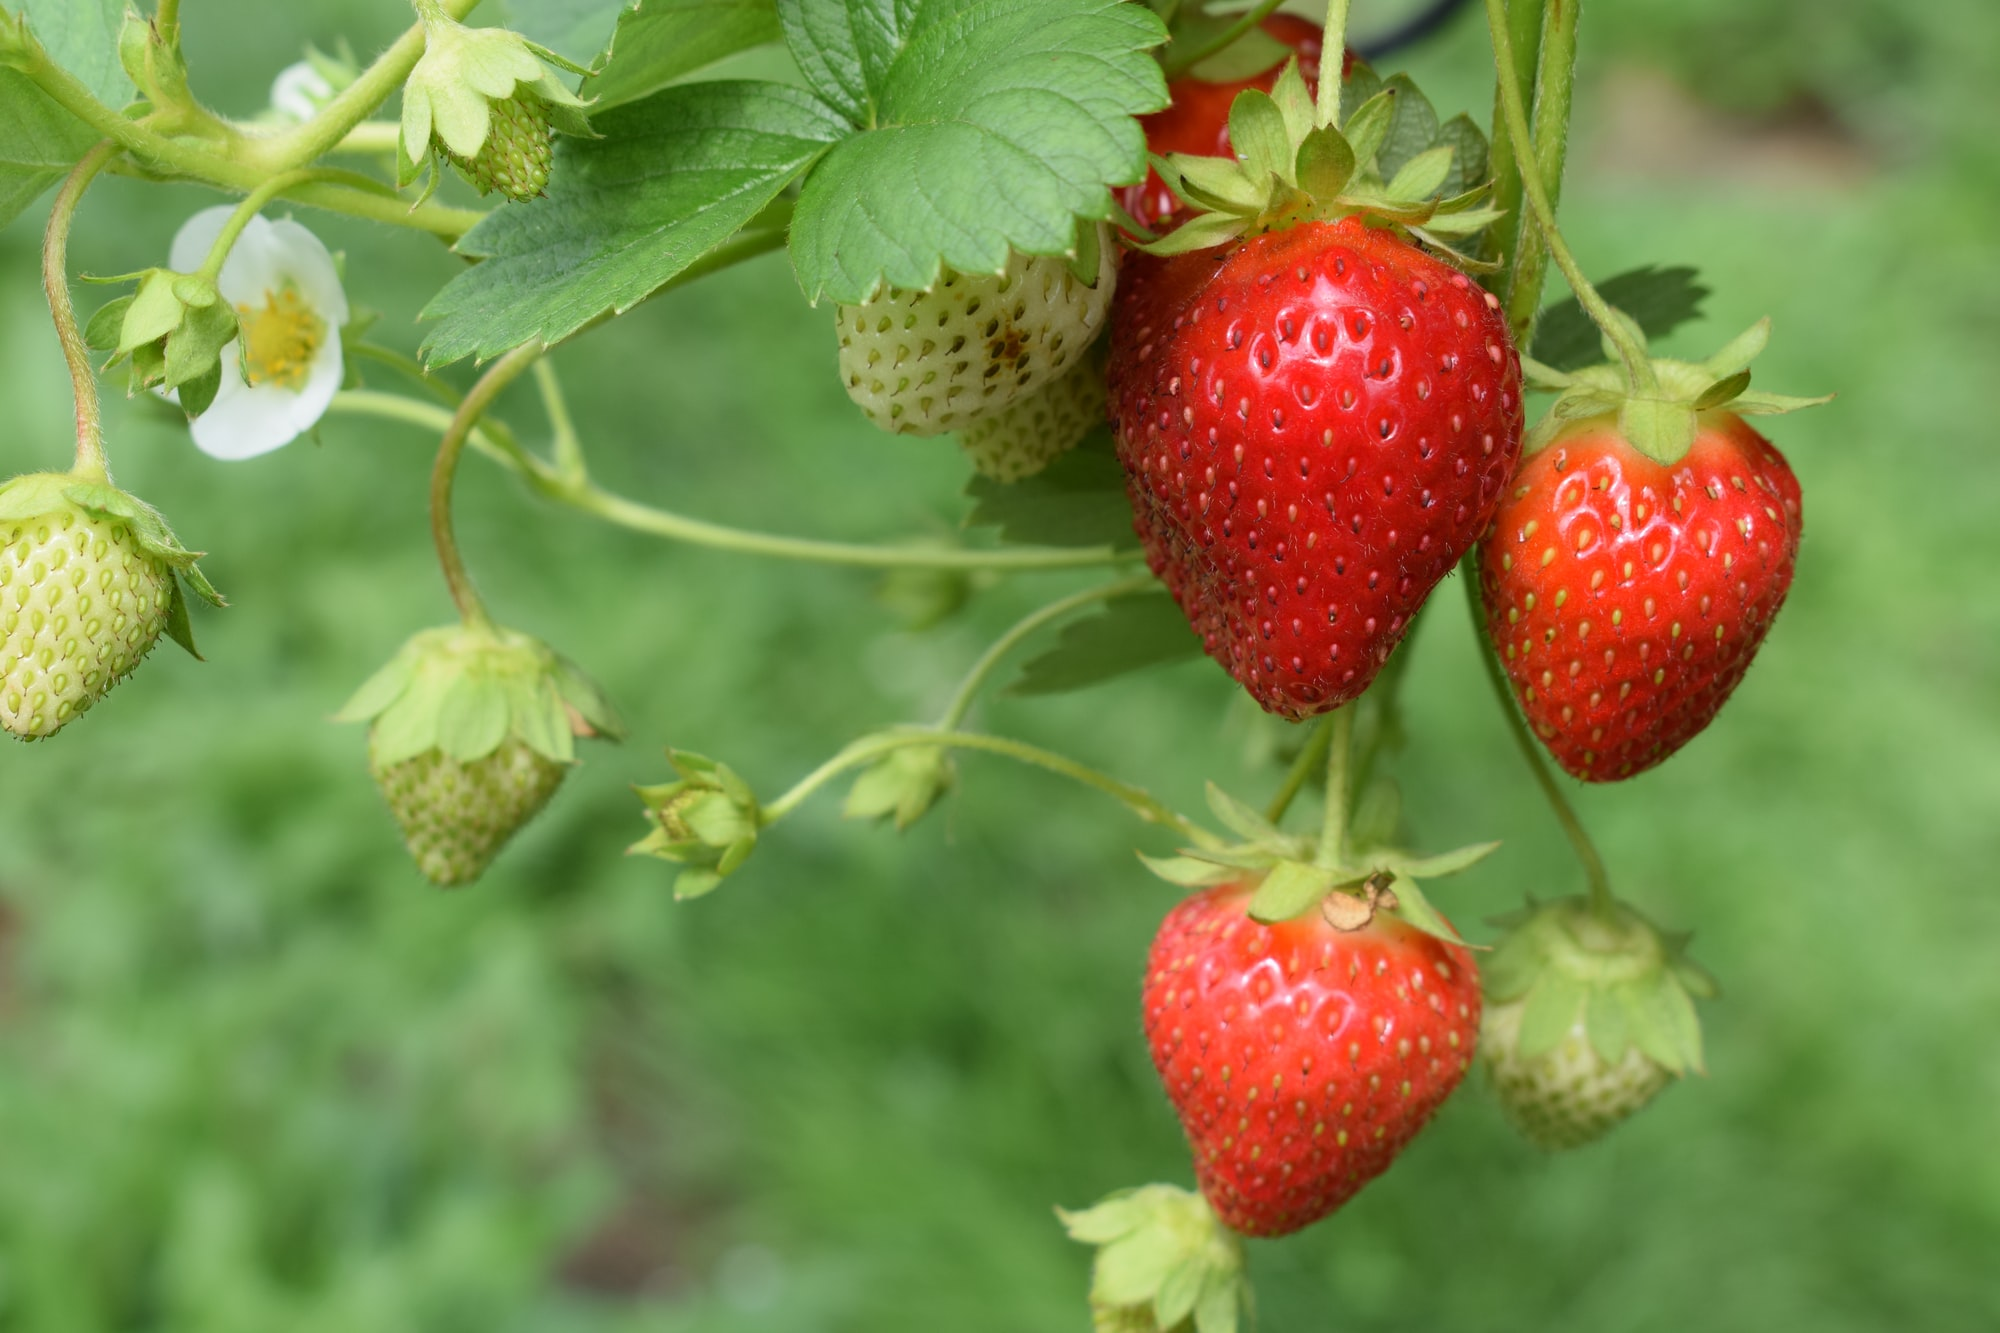 Strawberries: Small in Size But They Pack a Real Nutritional Punch